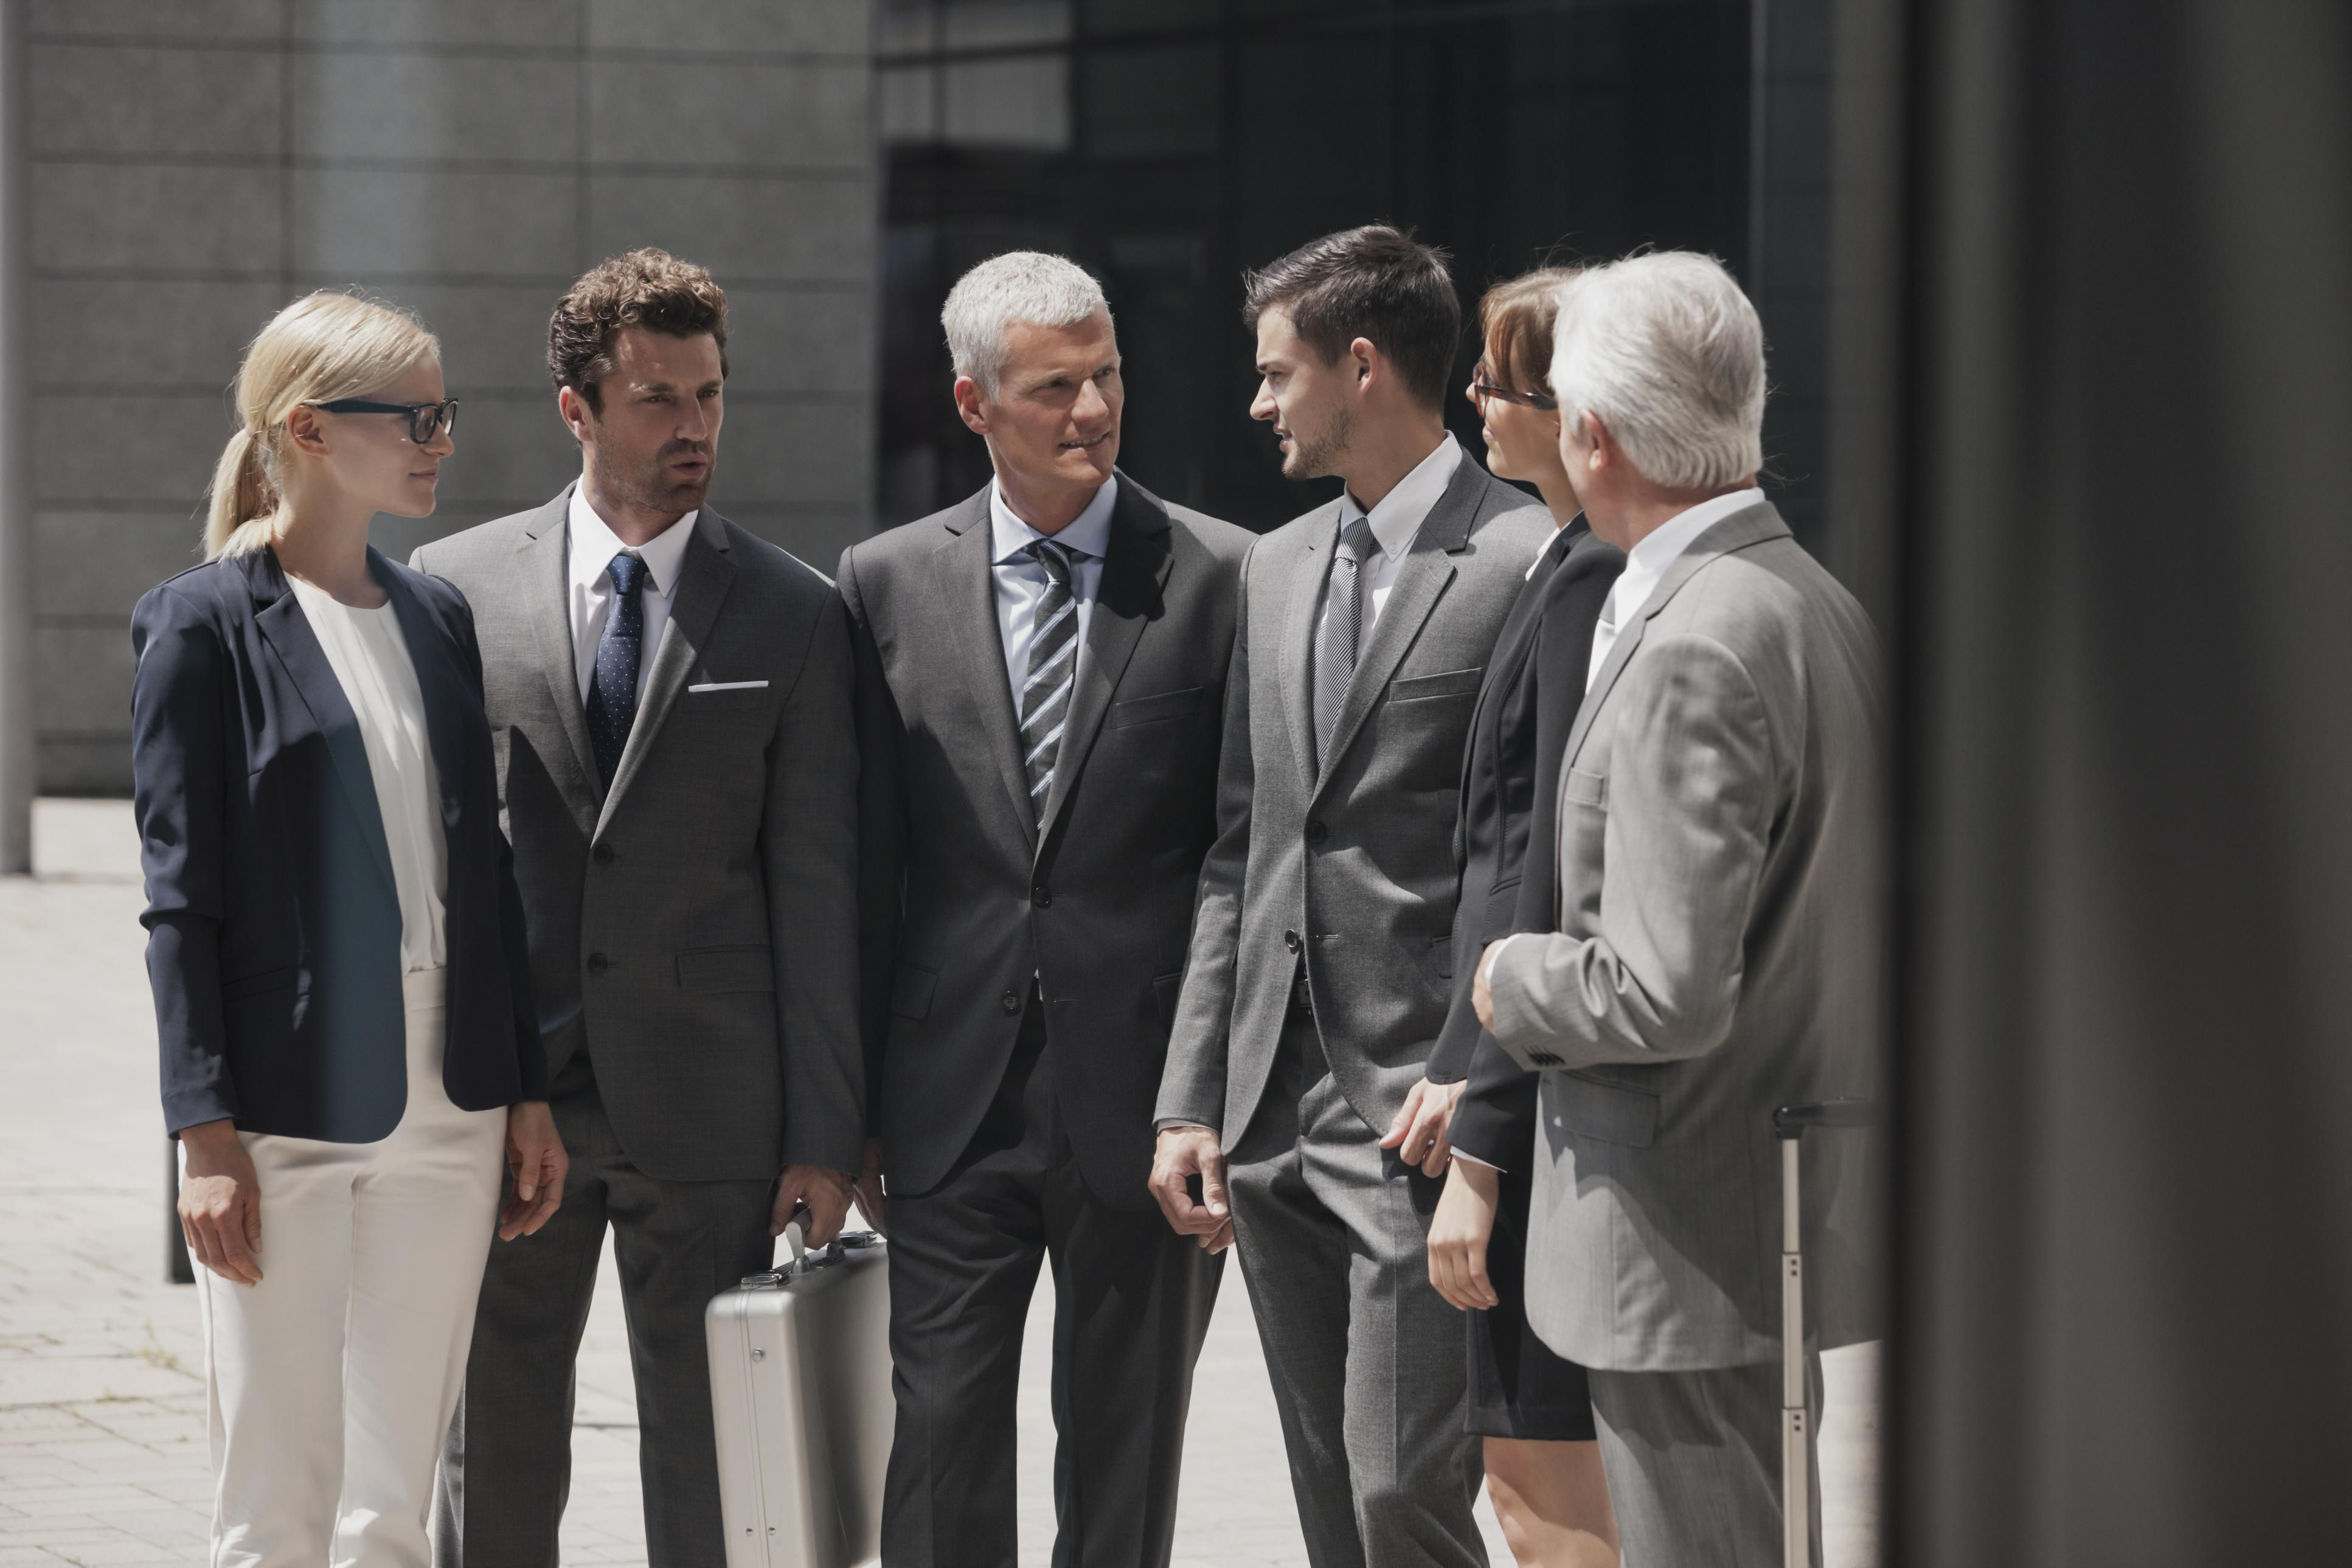 how to dress in a business formal workplace